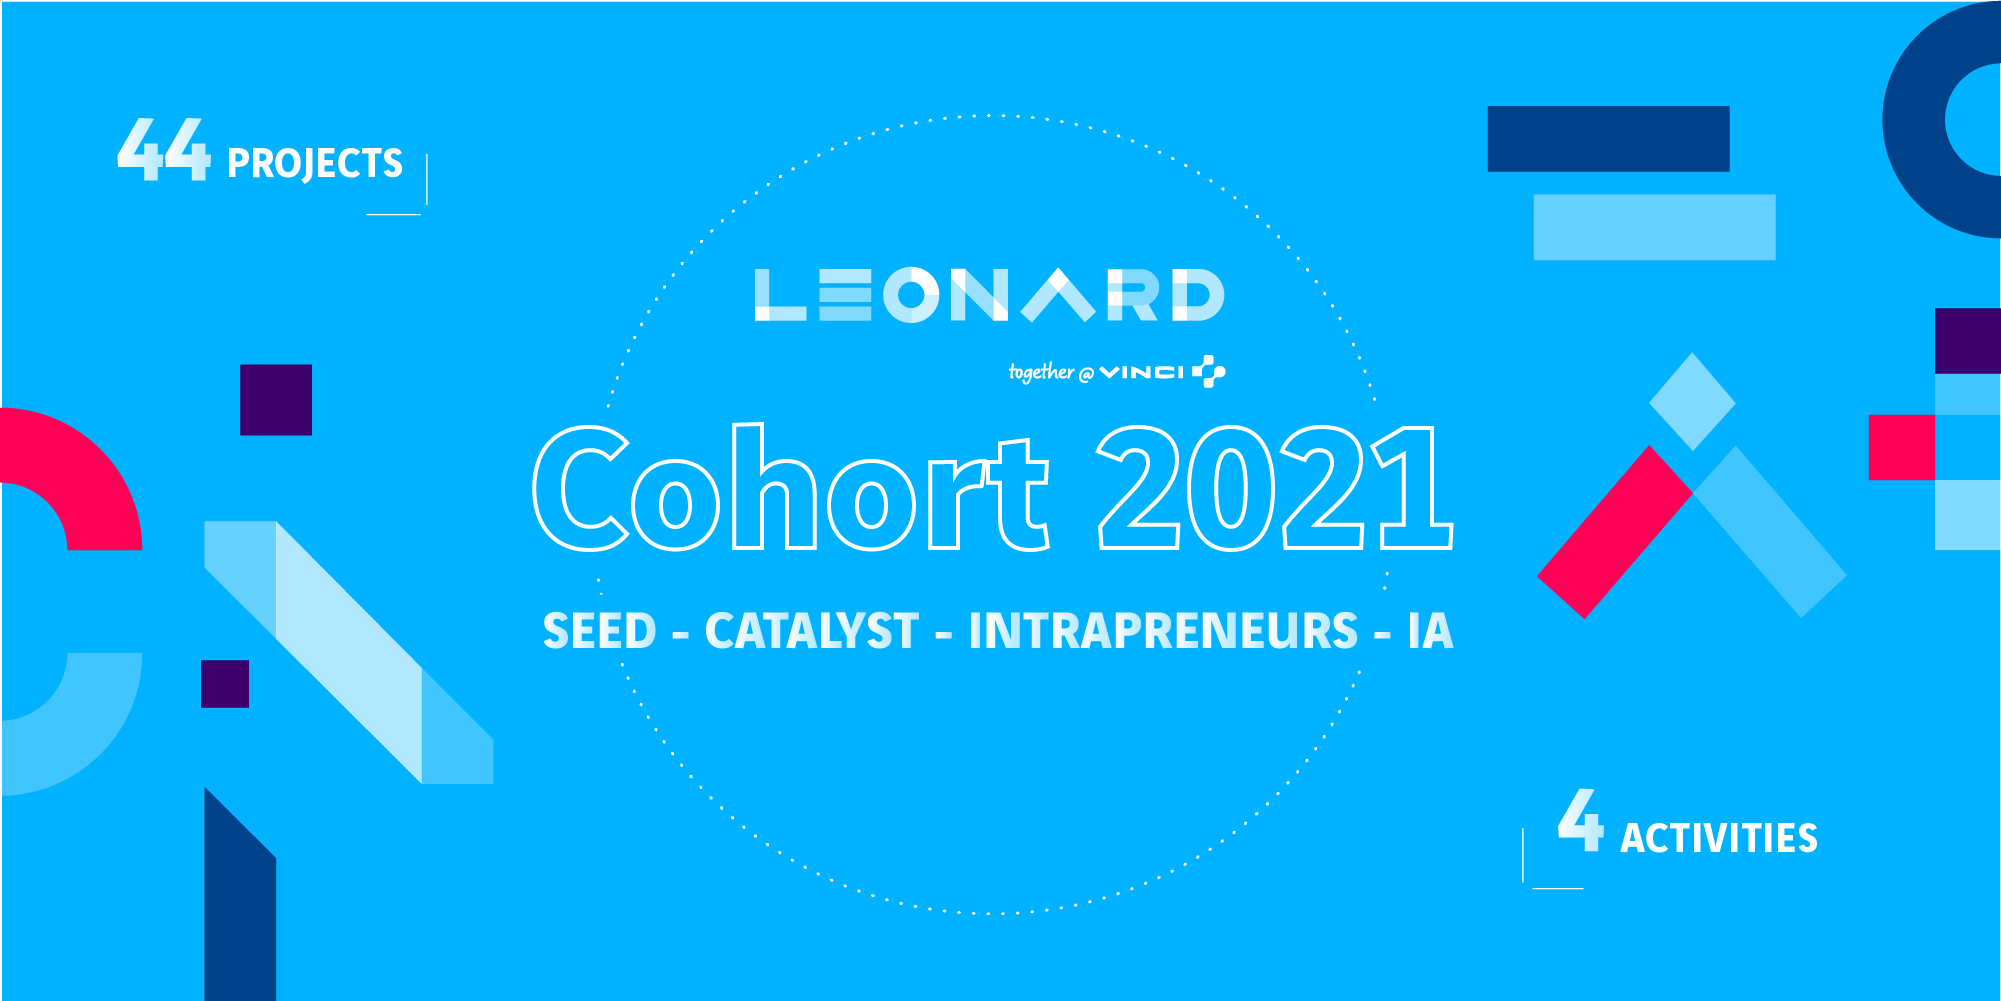 Leonard's acceleration programs involve 44 new projects in 2021